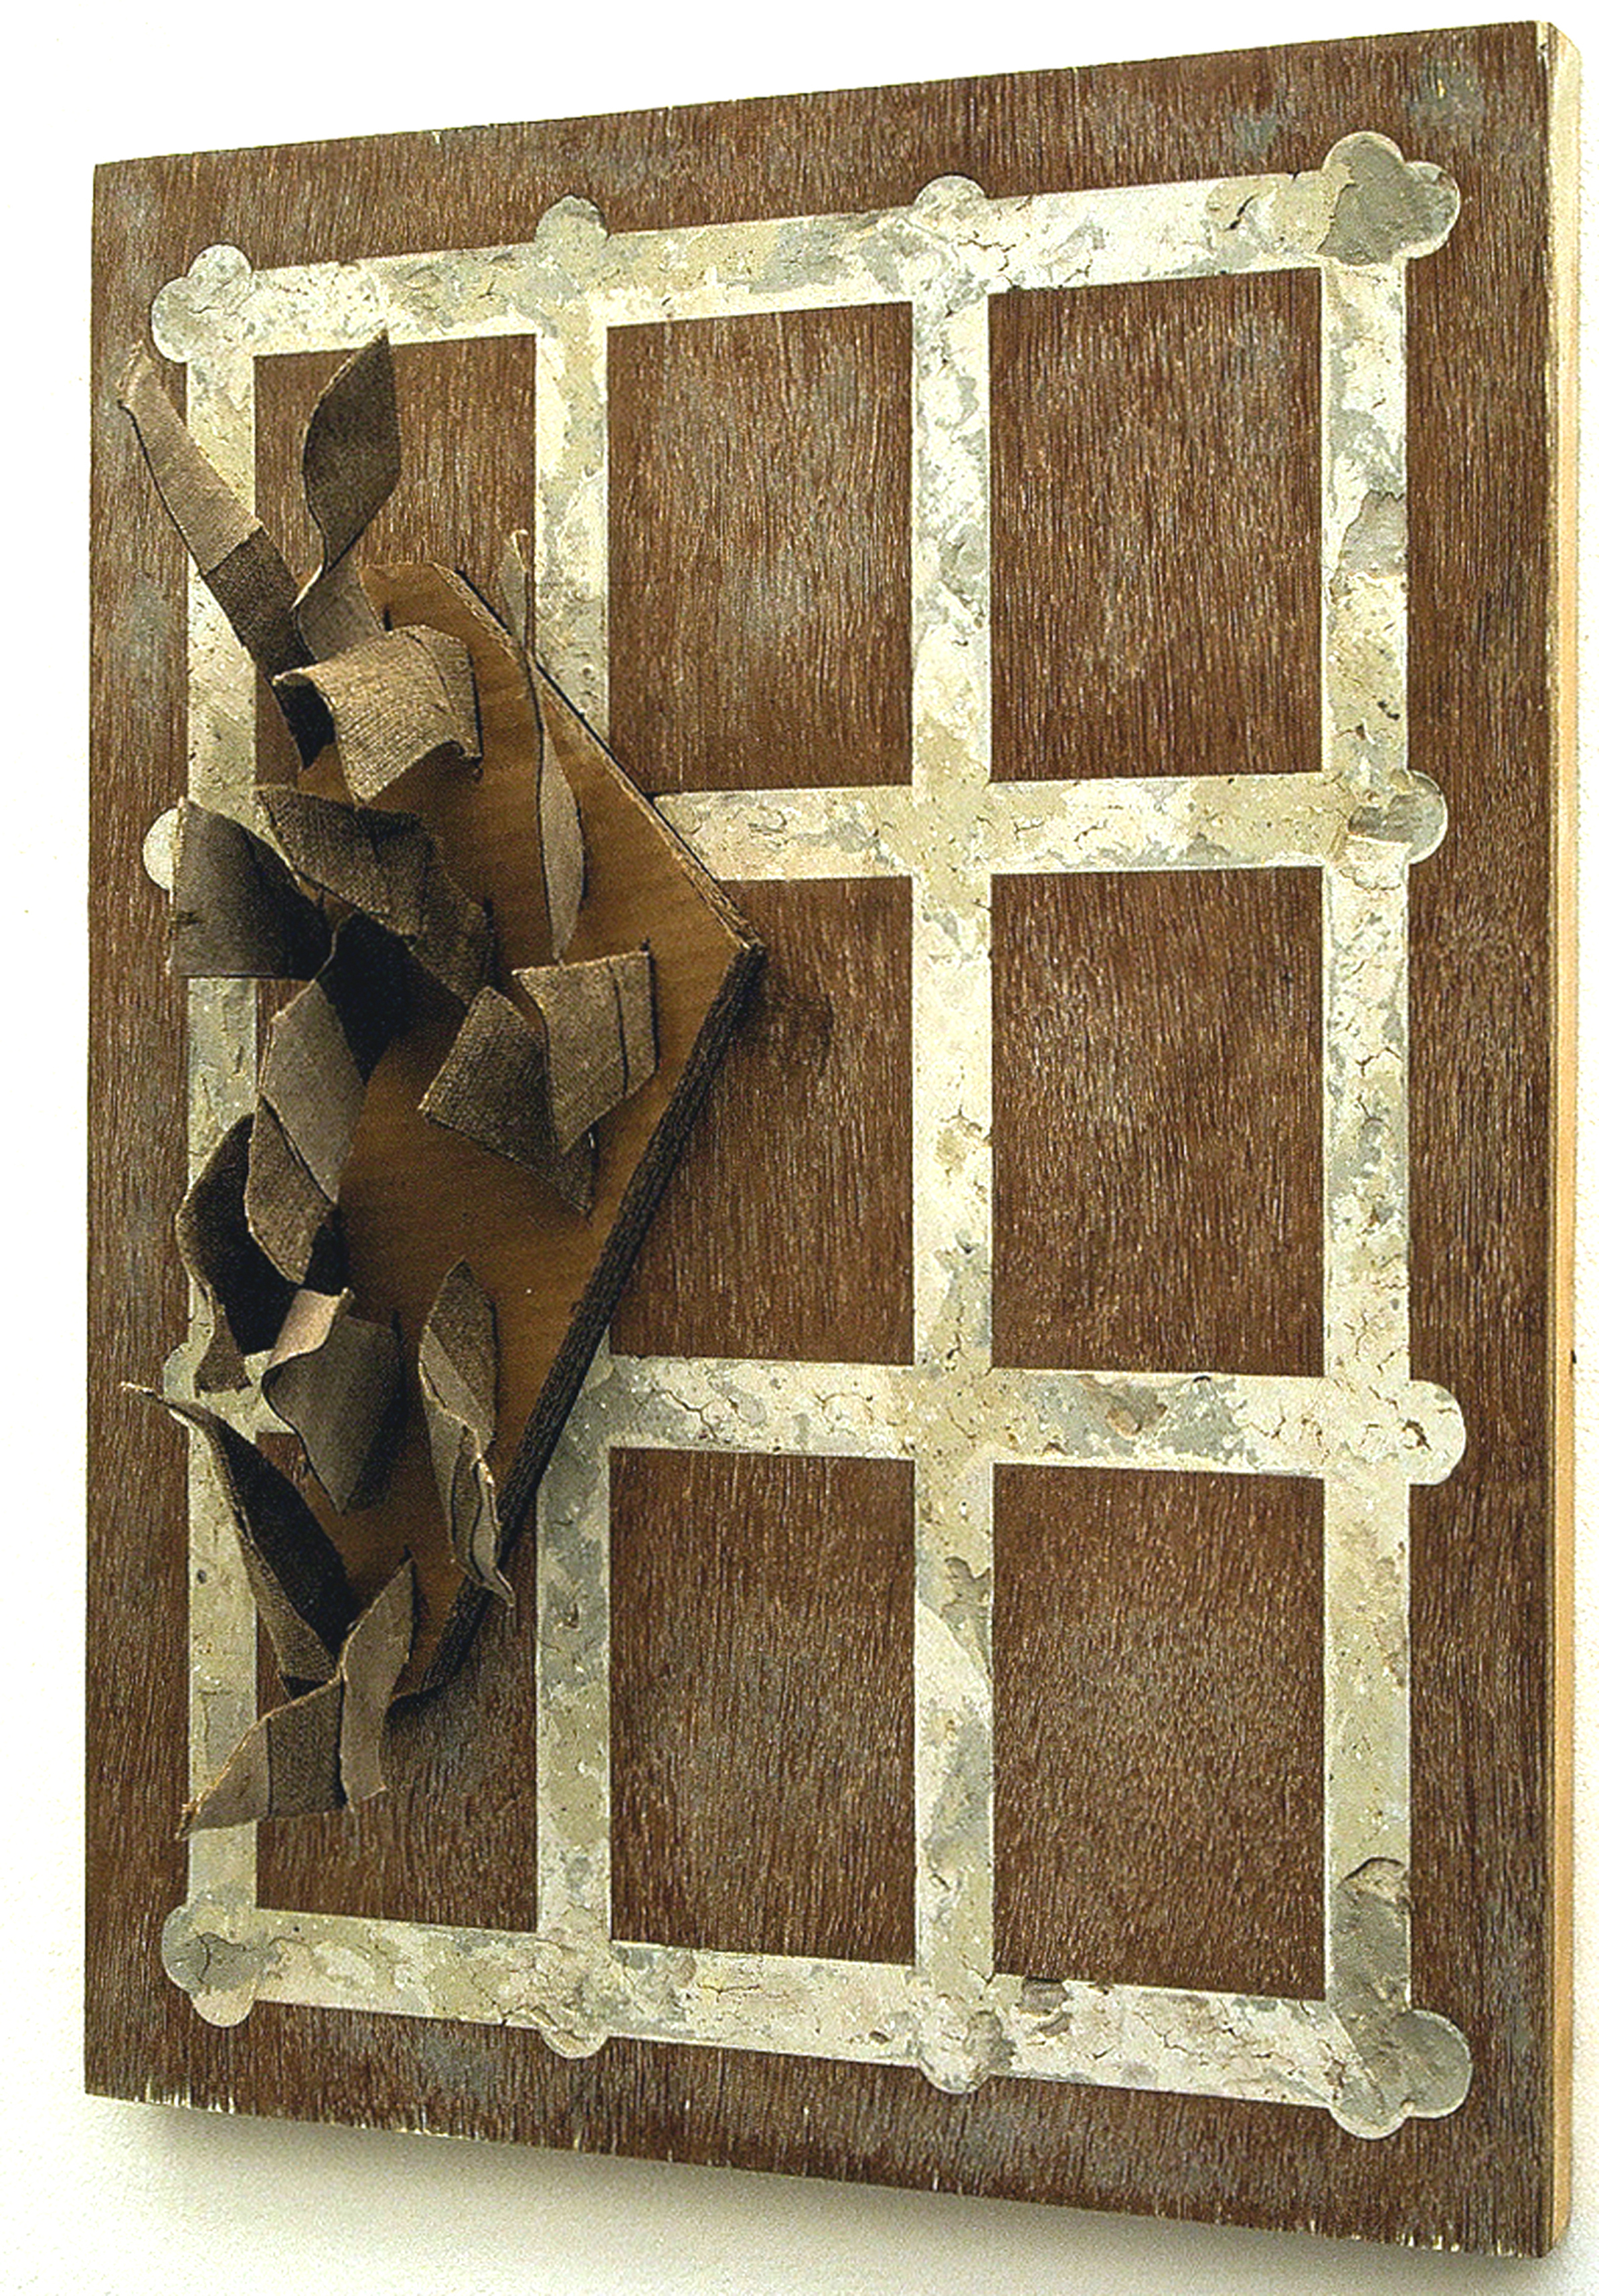 marble grid in wood side view-A3